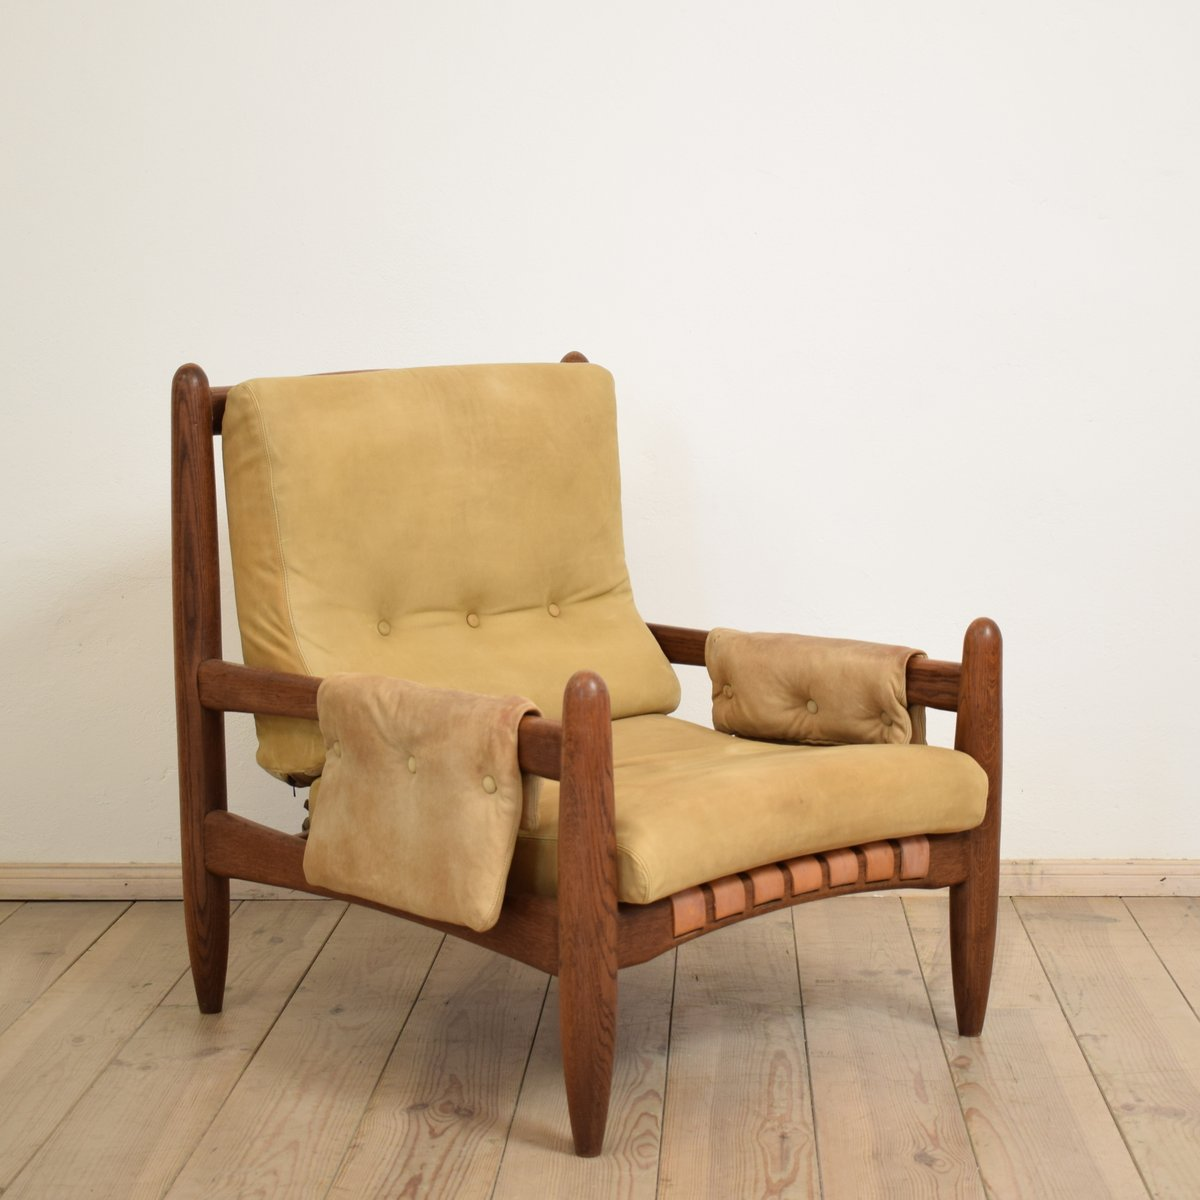 Italian Armchair, 1970s for sale at Pamono